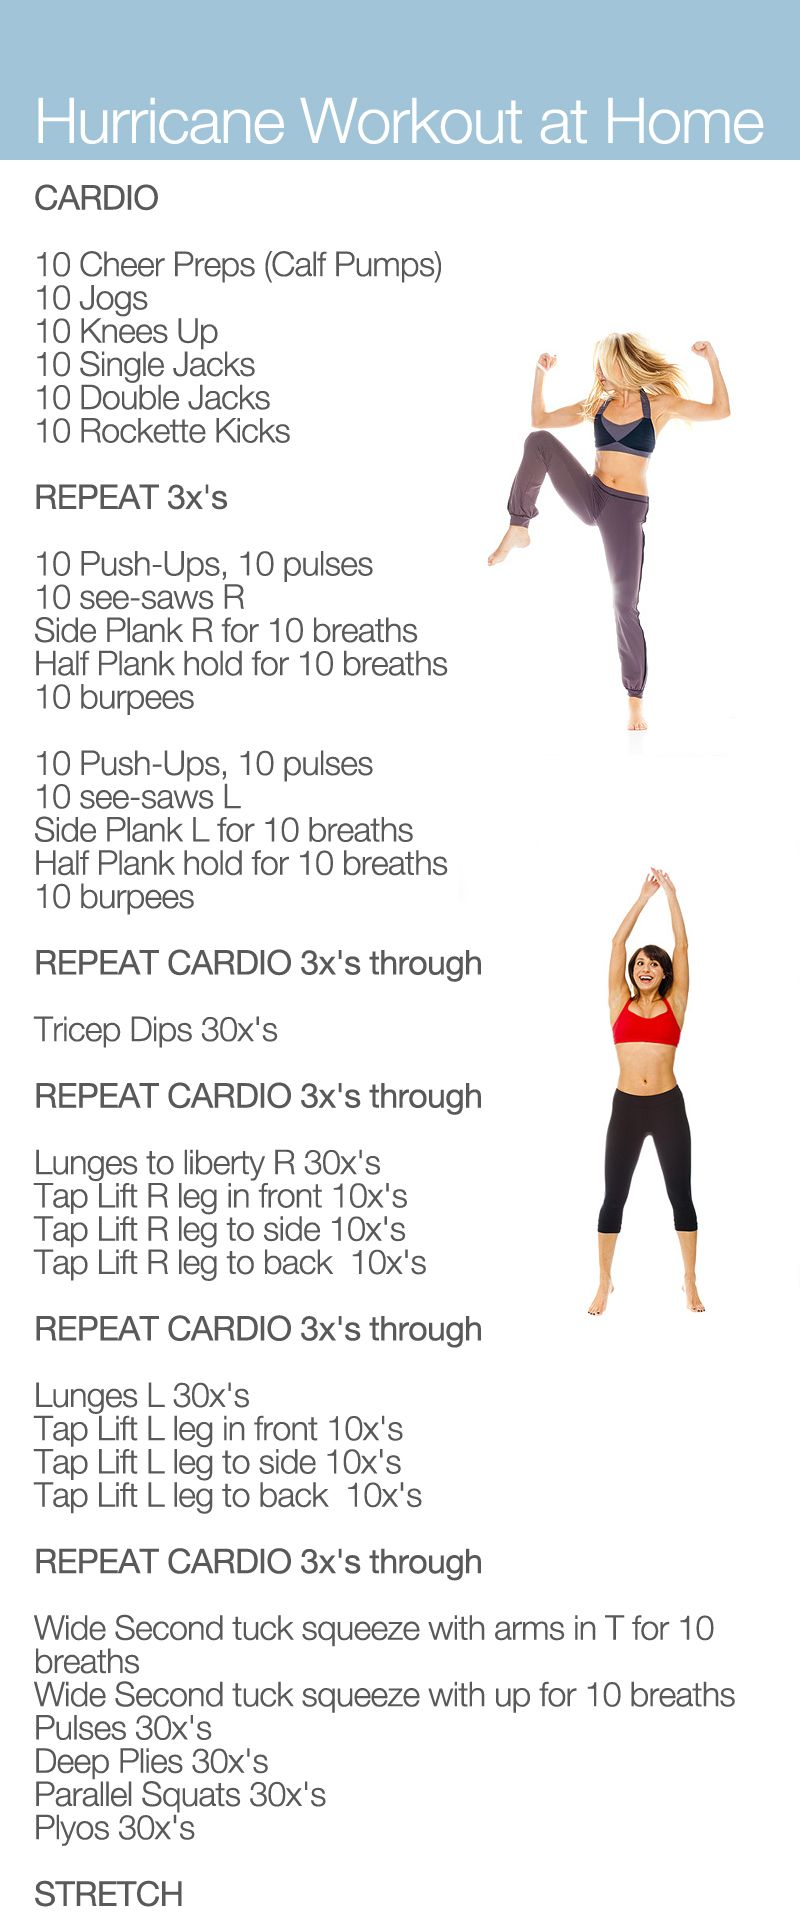 Lithe Hurricane Workout At Home At Home Workouts Quick Workout Daily Workout